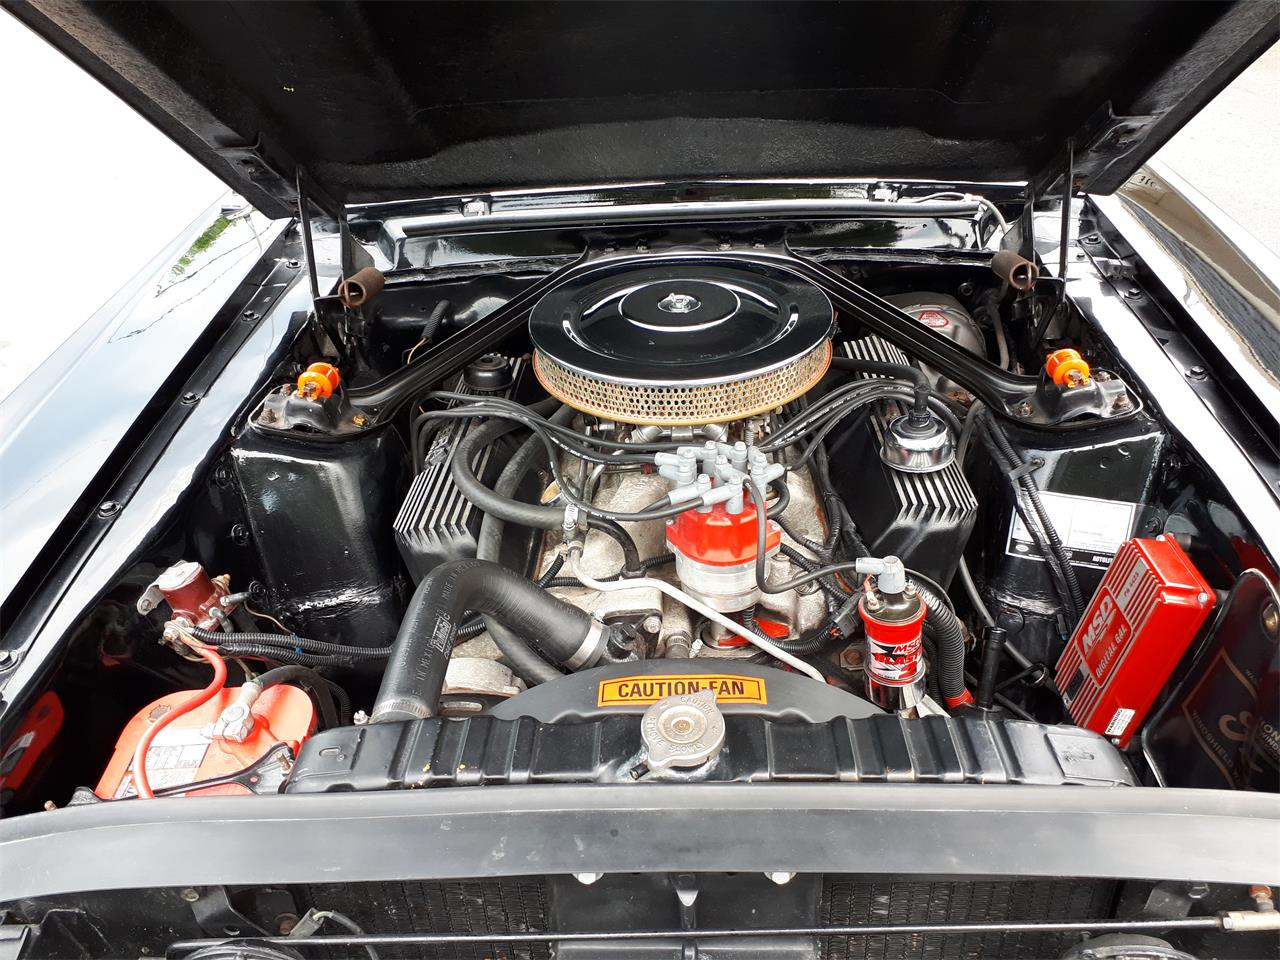 Large Picture of '67 Ford Mustang located in Quebec - $57,000.00 Offered by a Private Seller - QH2P